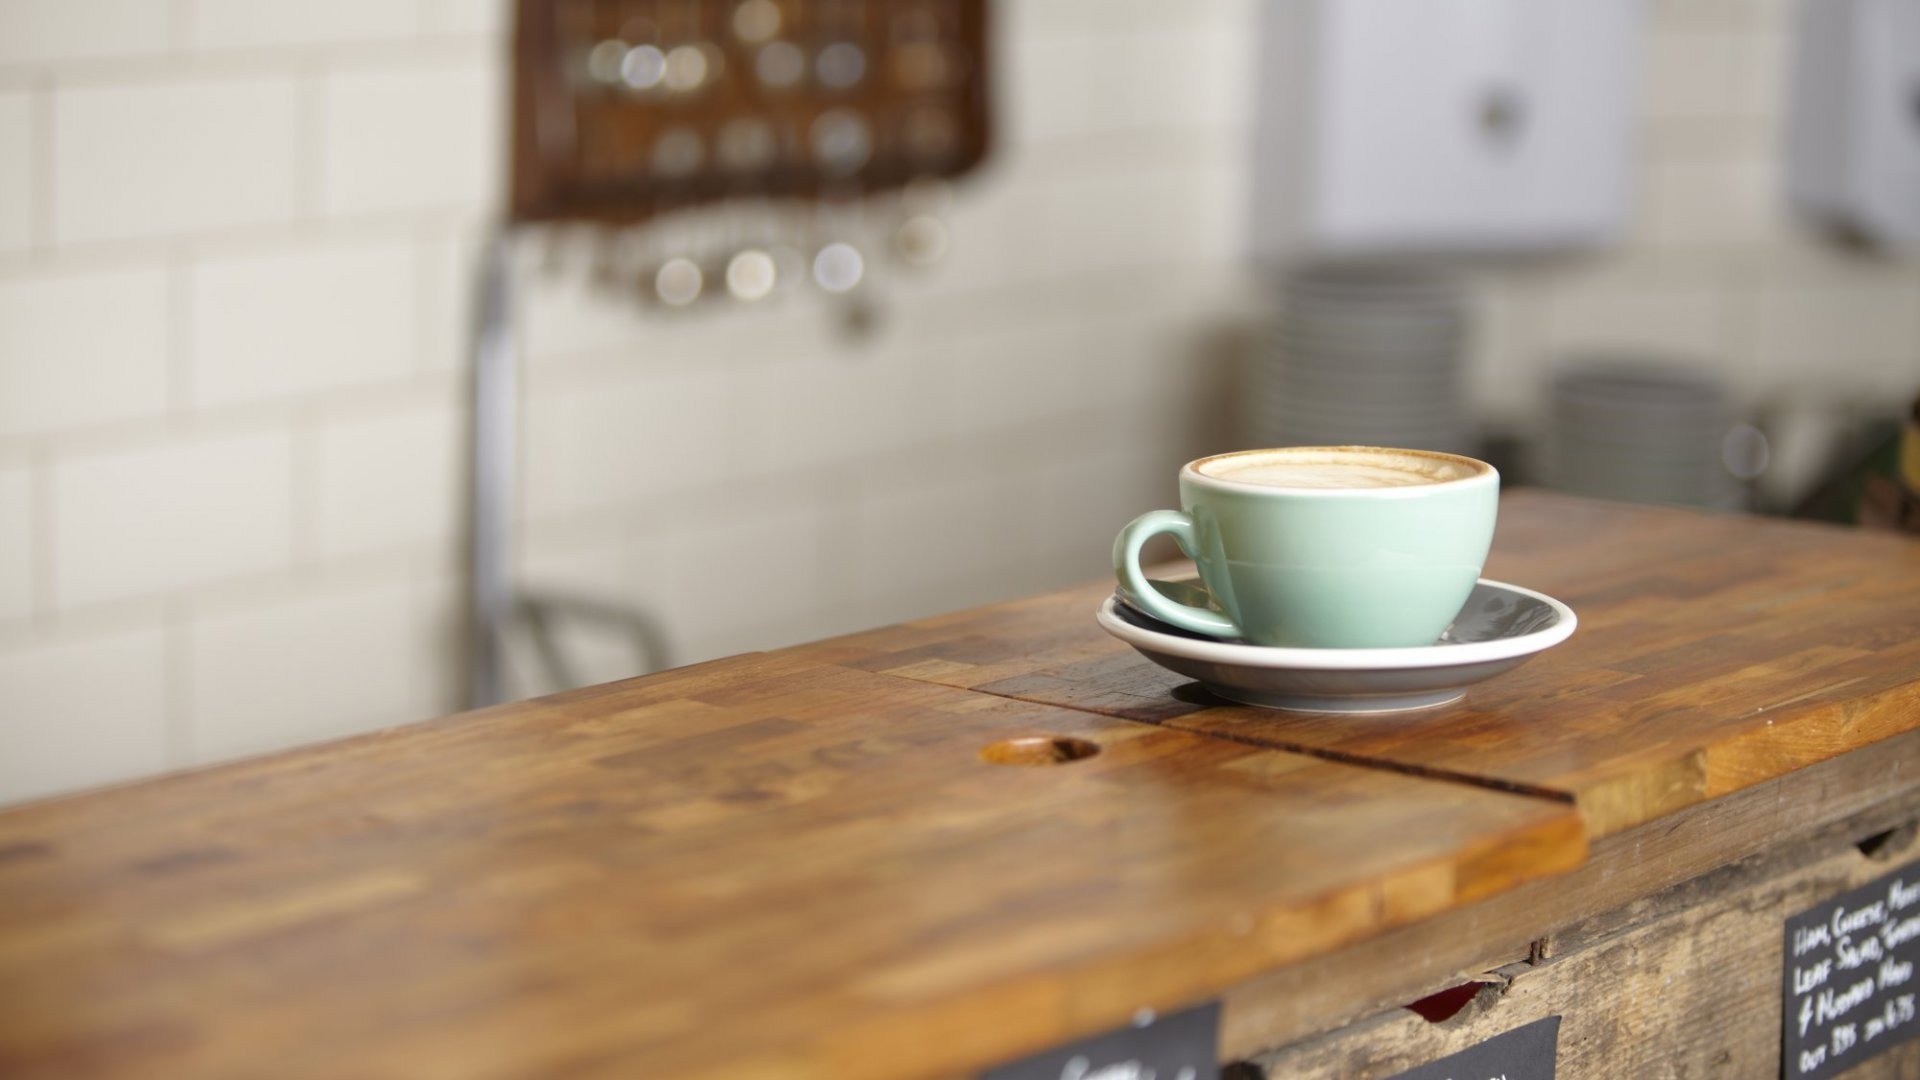 The Coffee Shop Approach to Innovation